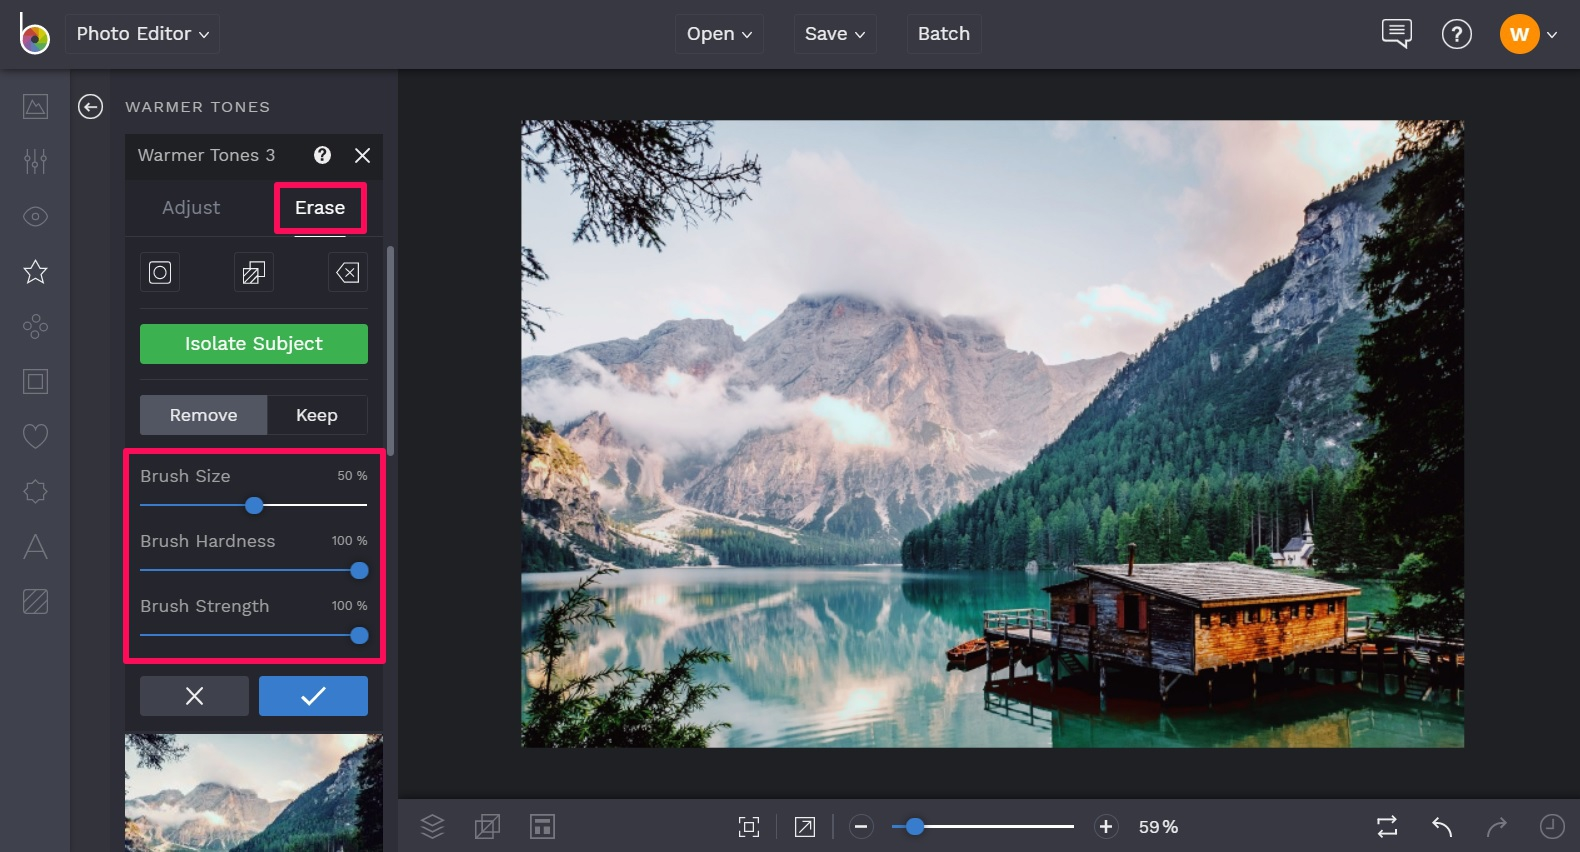 Customize your warm tone photography